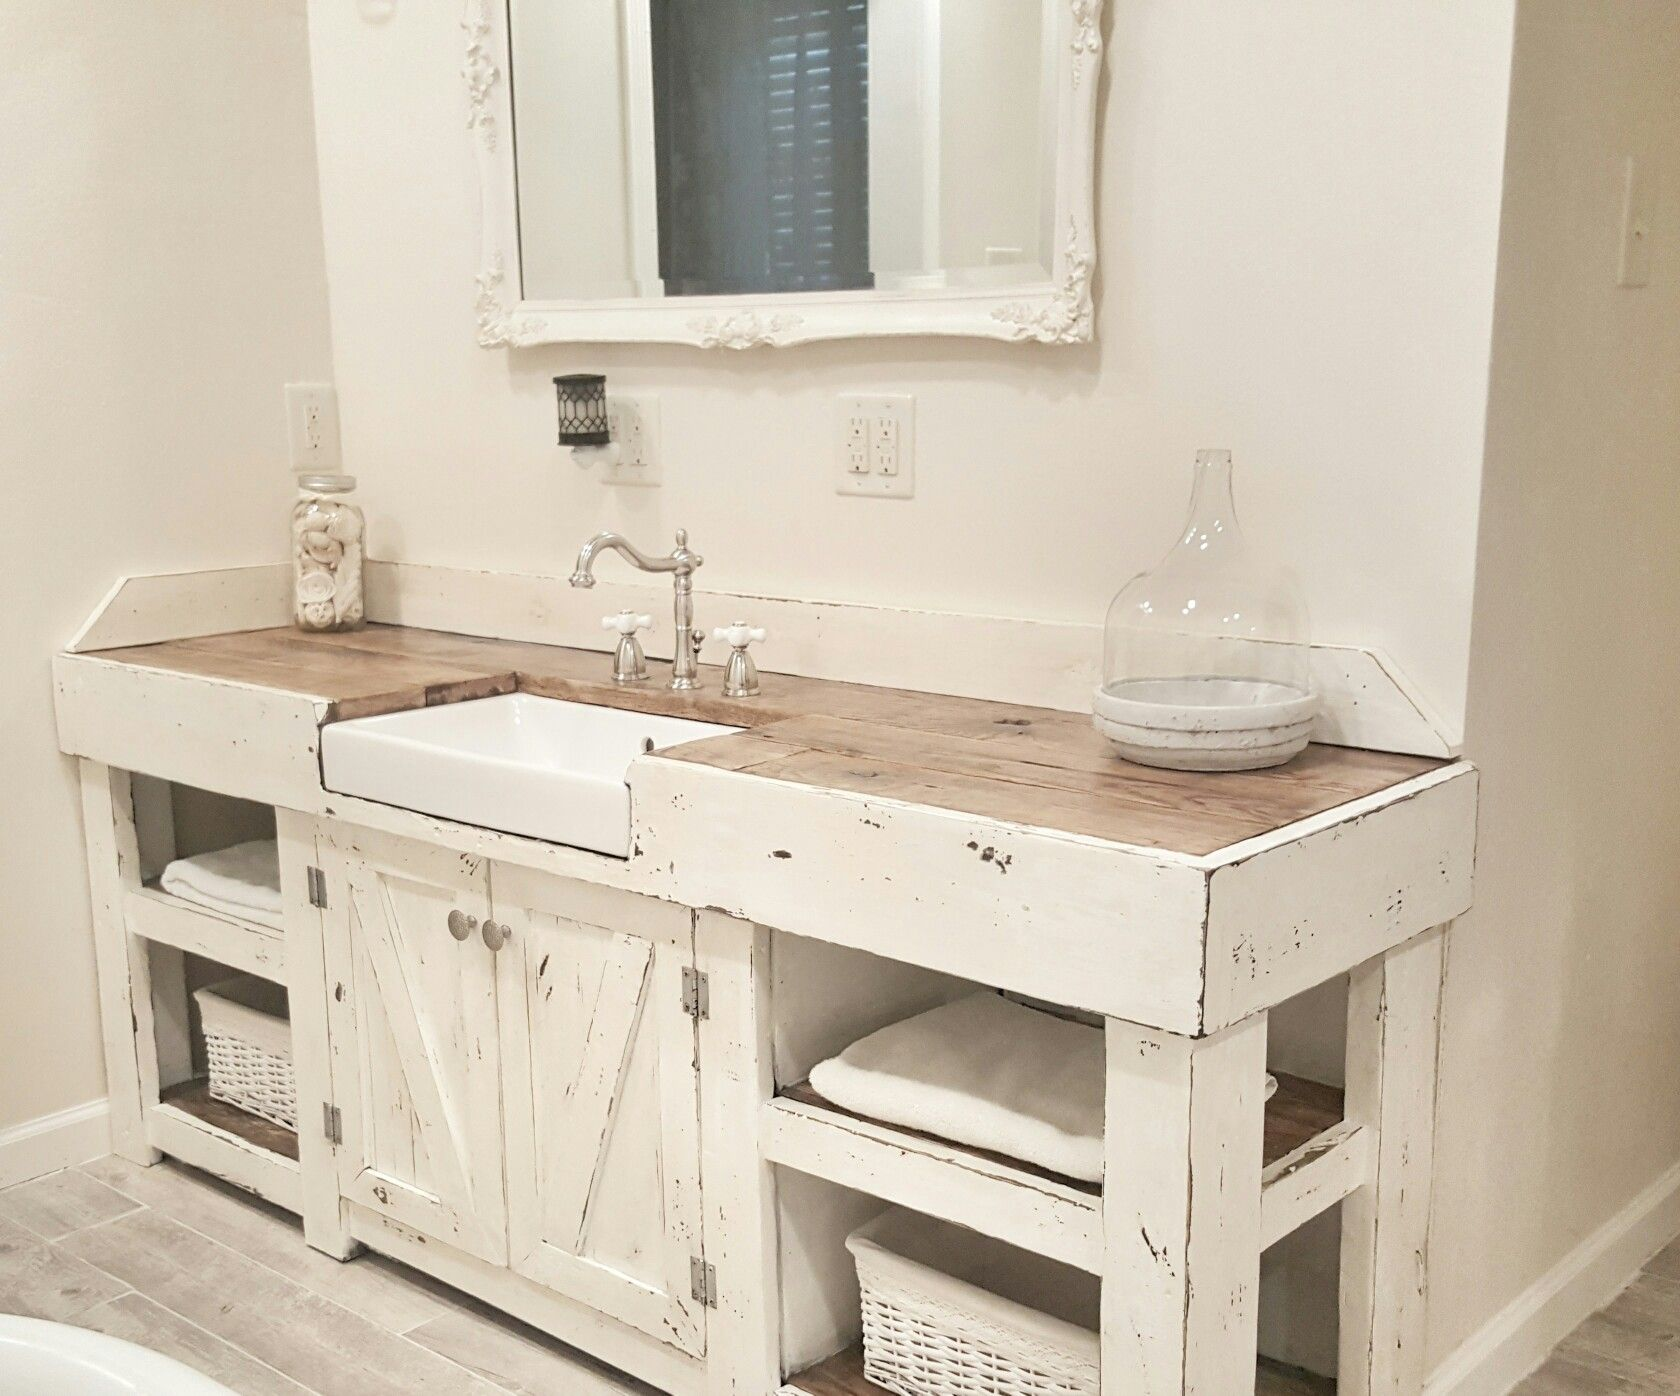 Cottage Bathroom Farmhouse Bathroom Farmhouse Vanity Farmhouse Sink